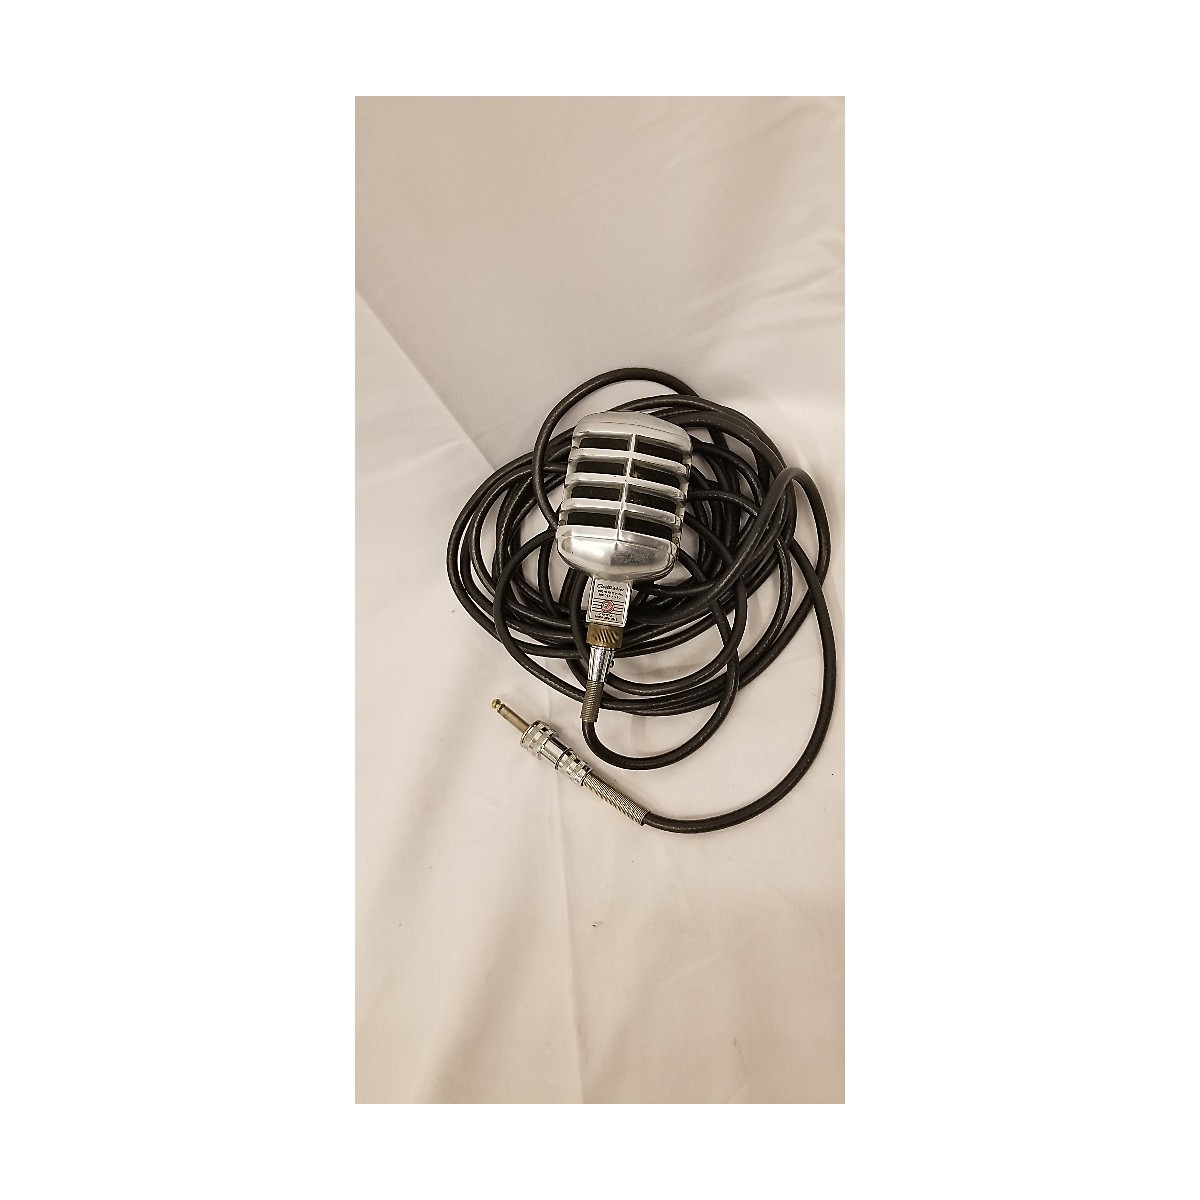 Electro-Voice 1950s 910 Dynamic Microphone